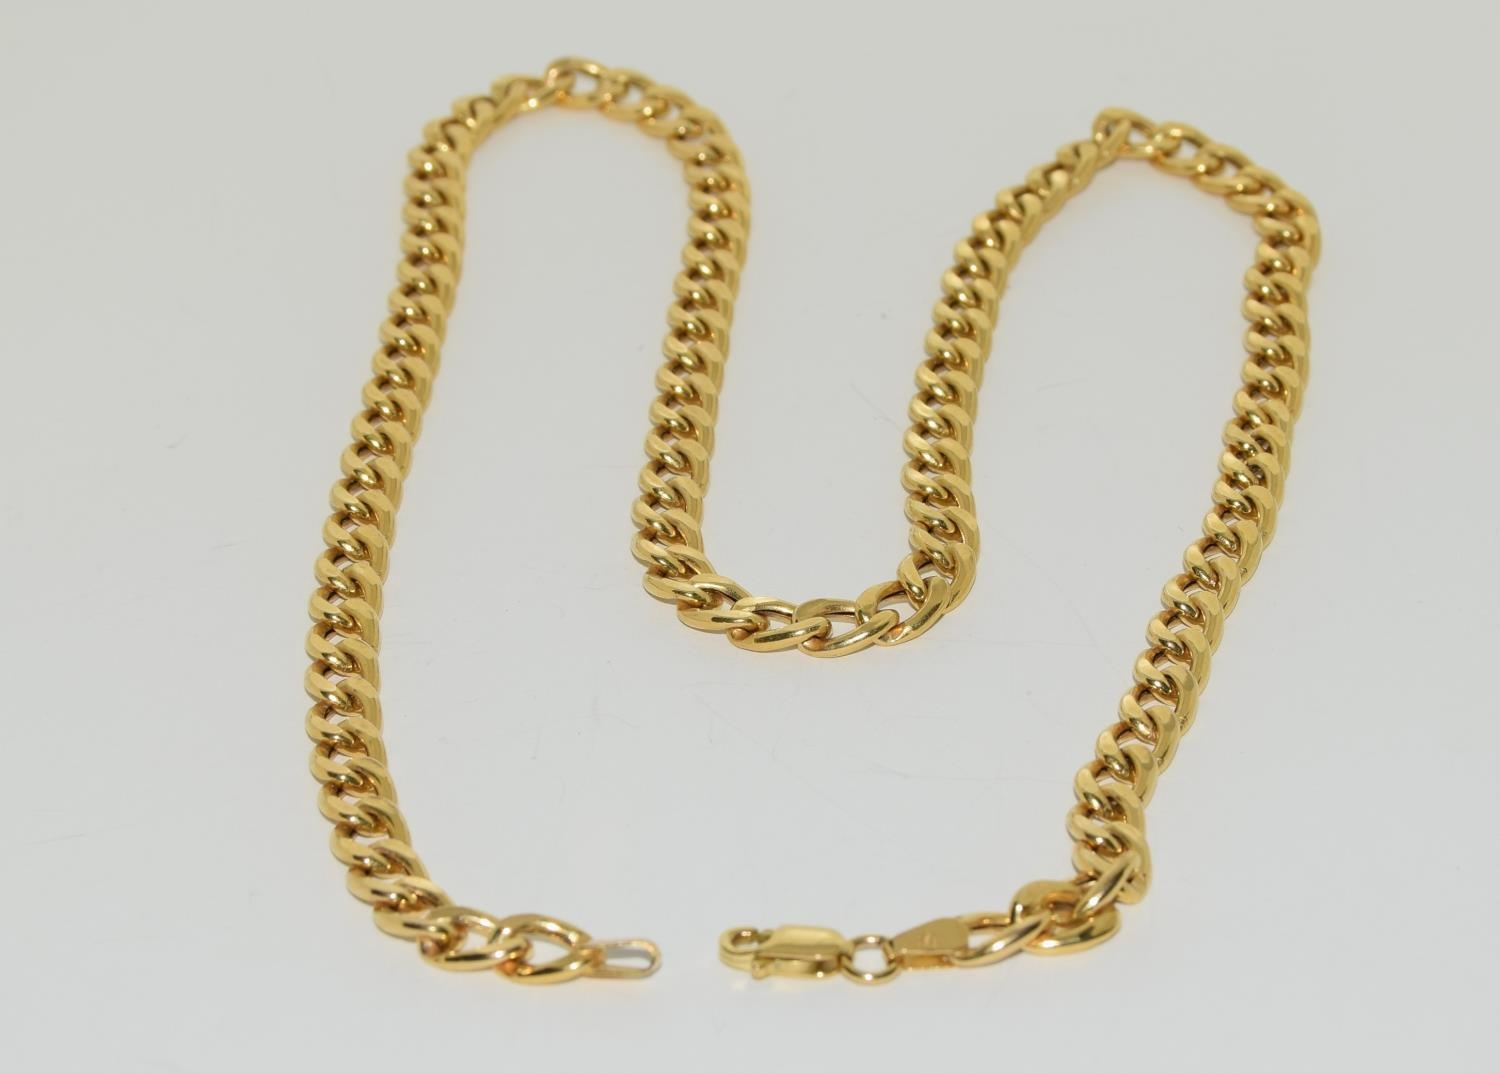 9ct gold flat link necklace 50cm long 11.5gm - Image 2 of 4